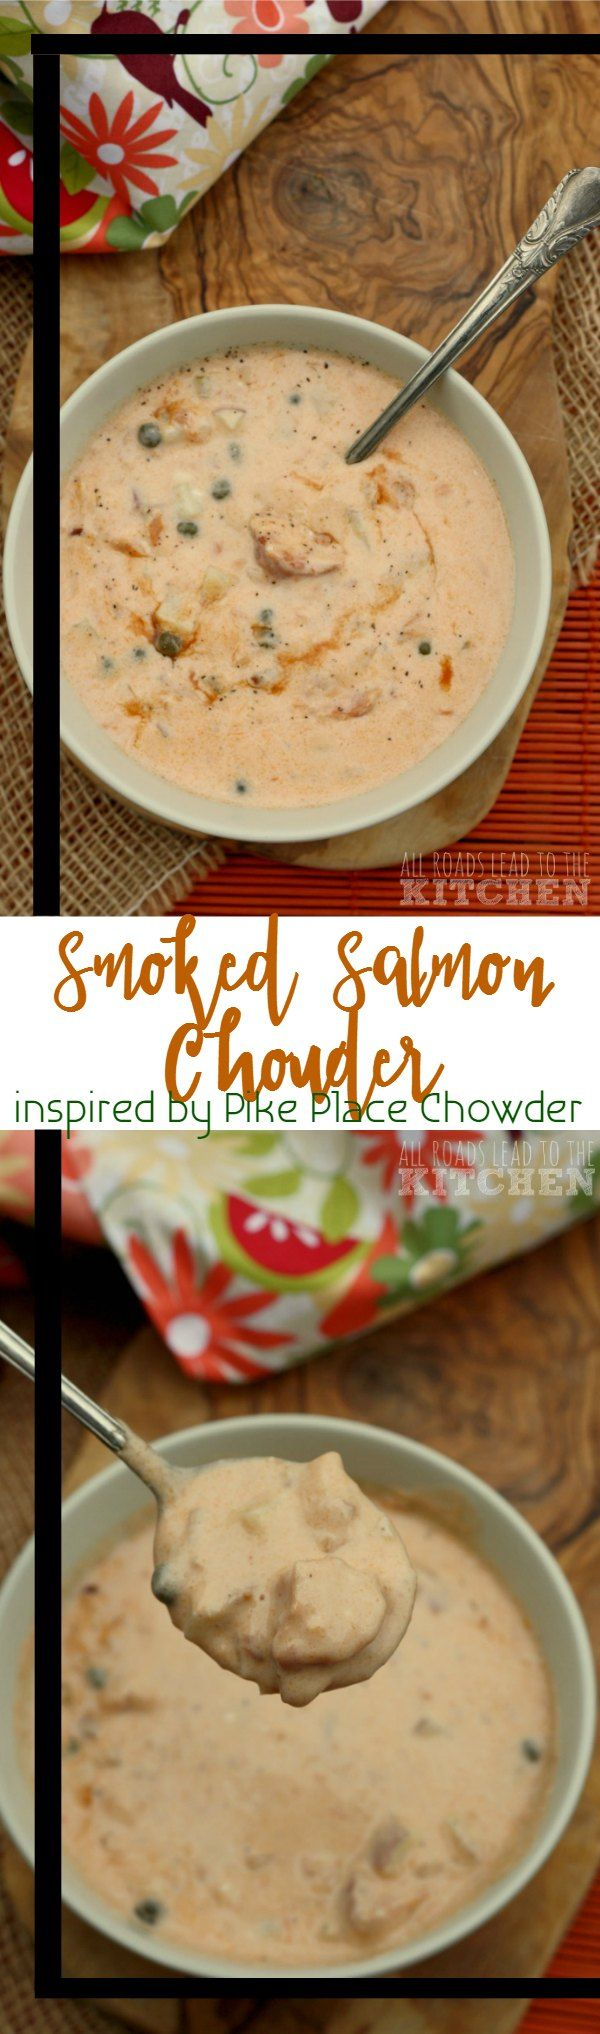 Smoked Salmon Chowder, a Pike Place Chowder copycat recipe